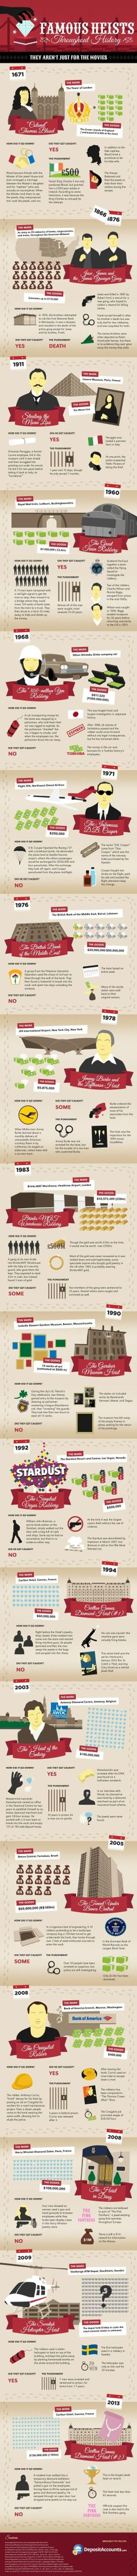 Famous Heists Throughout History [Infographic]